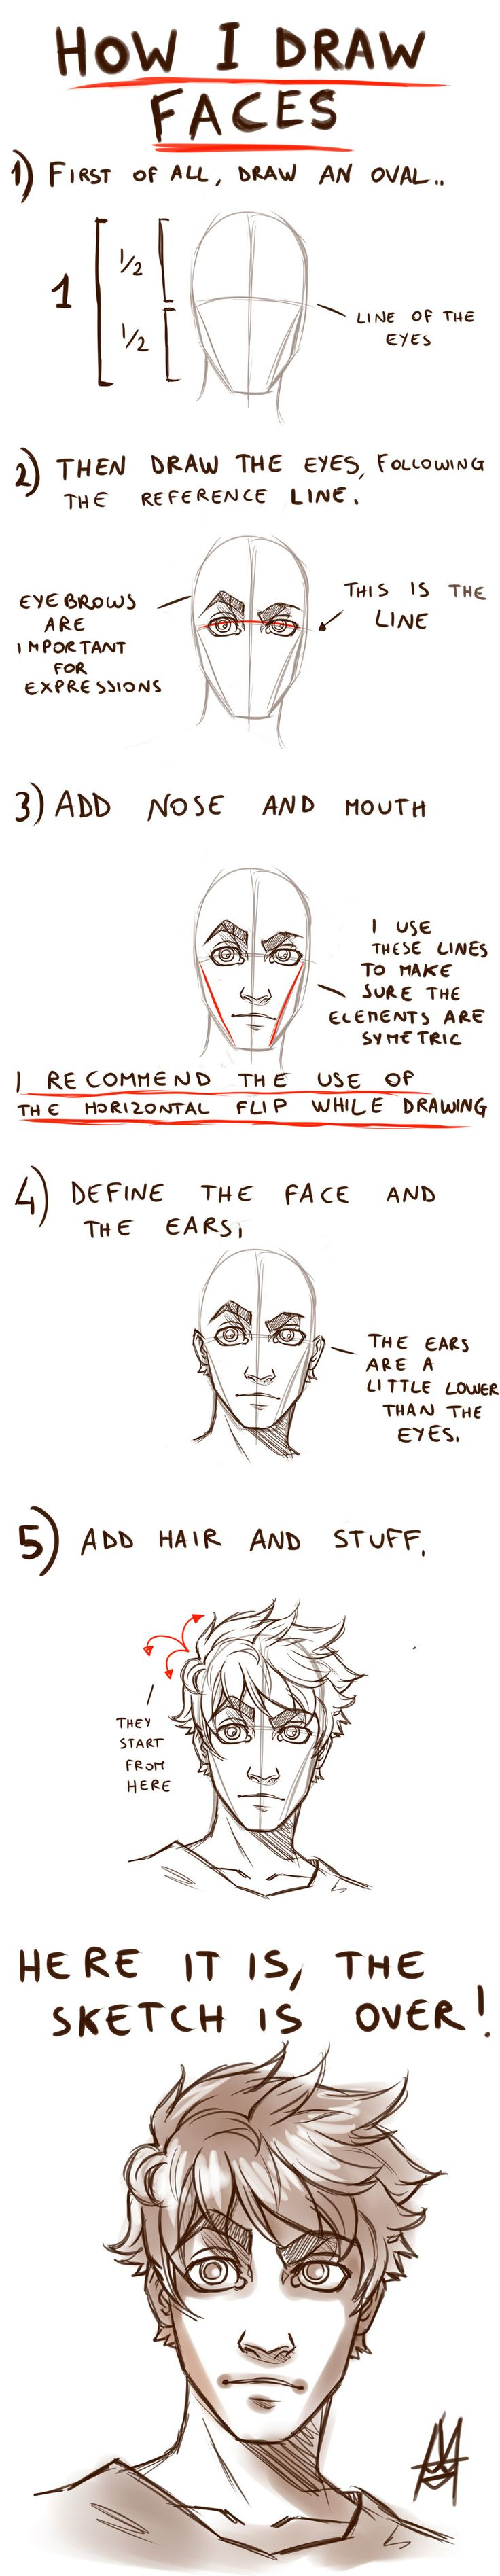 Tutorial How To Draw A Face By *mauroillustrator On Deviantart  Character  Design References